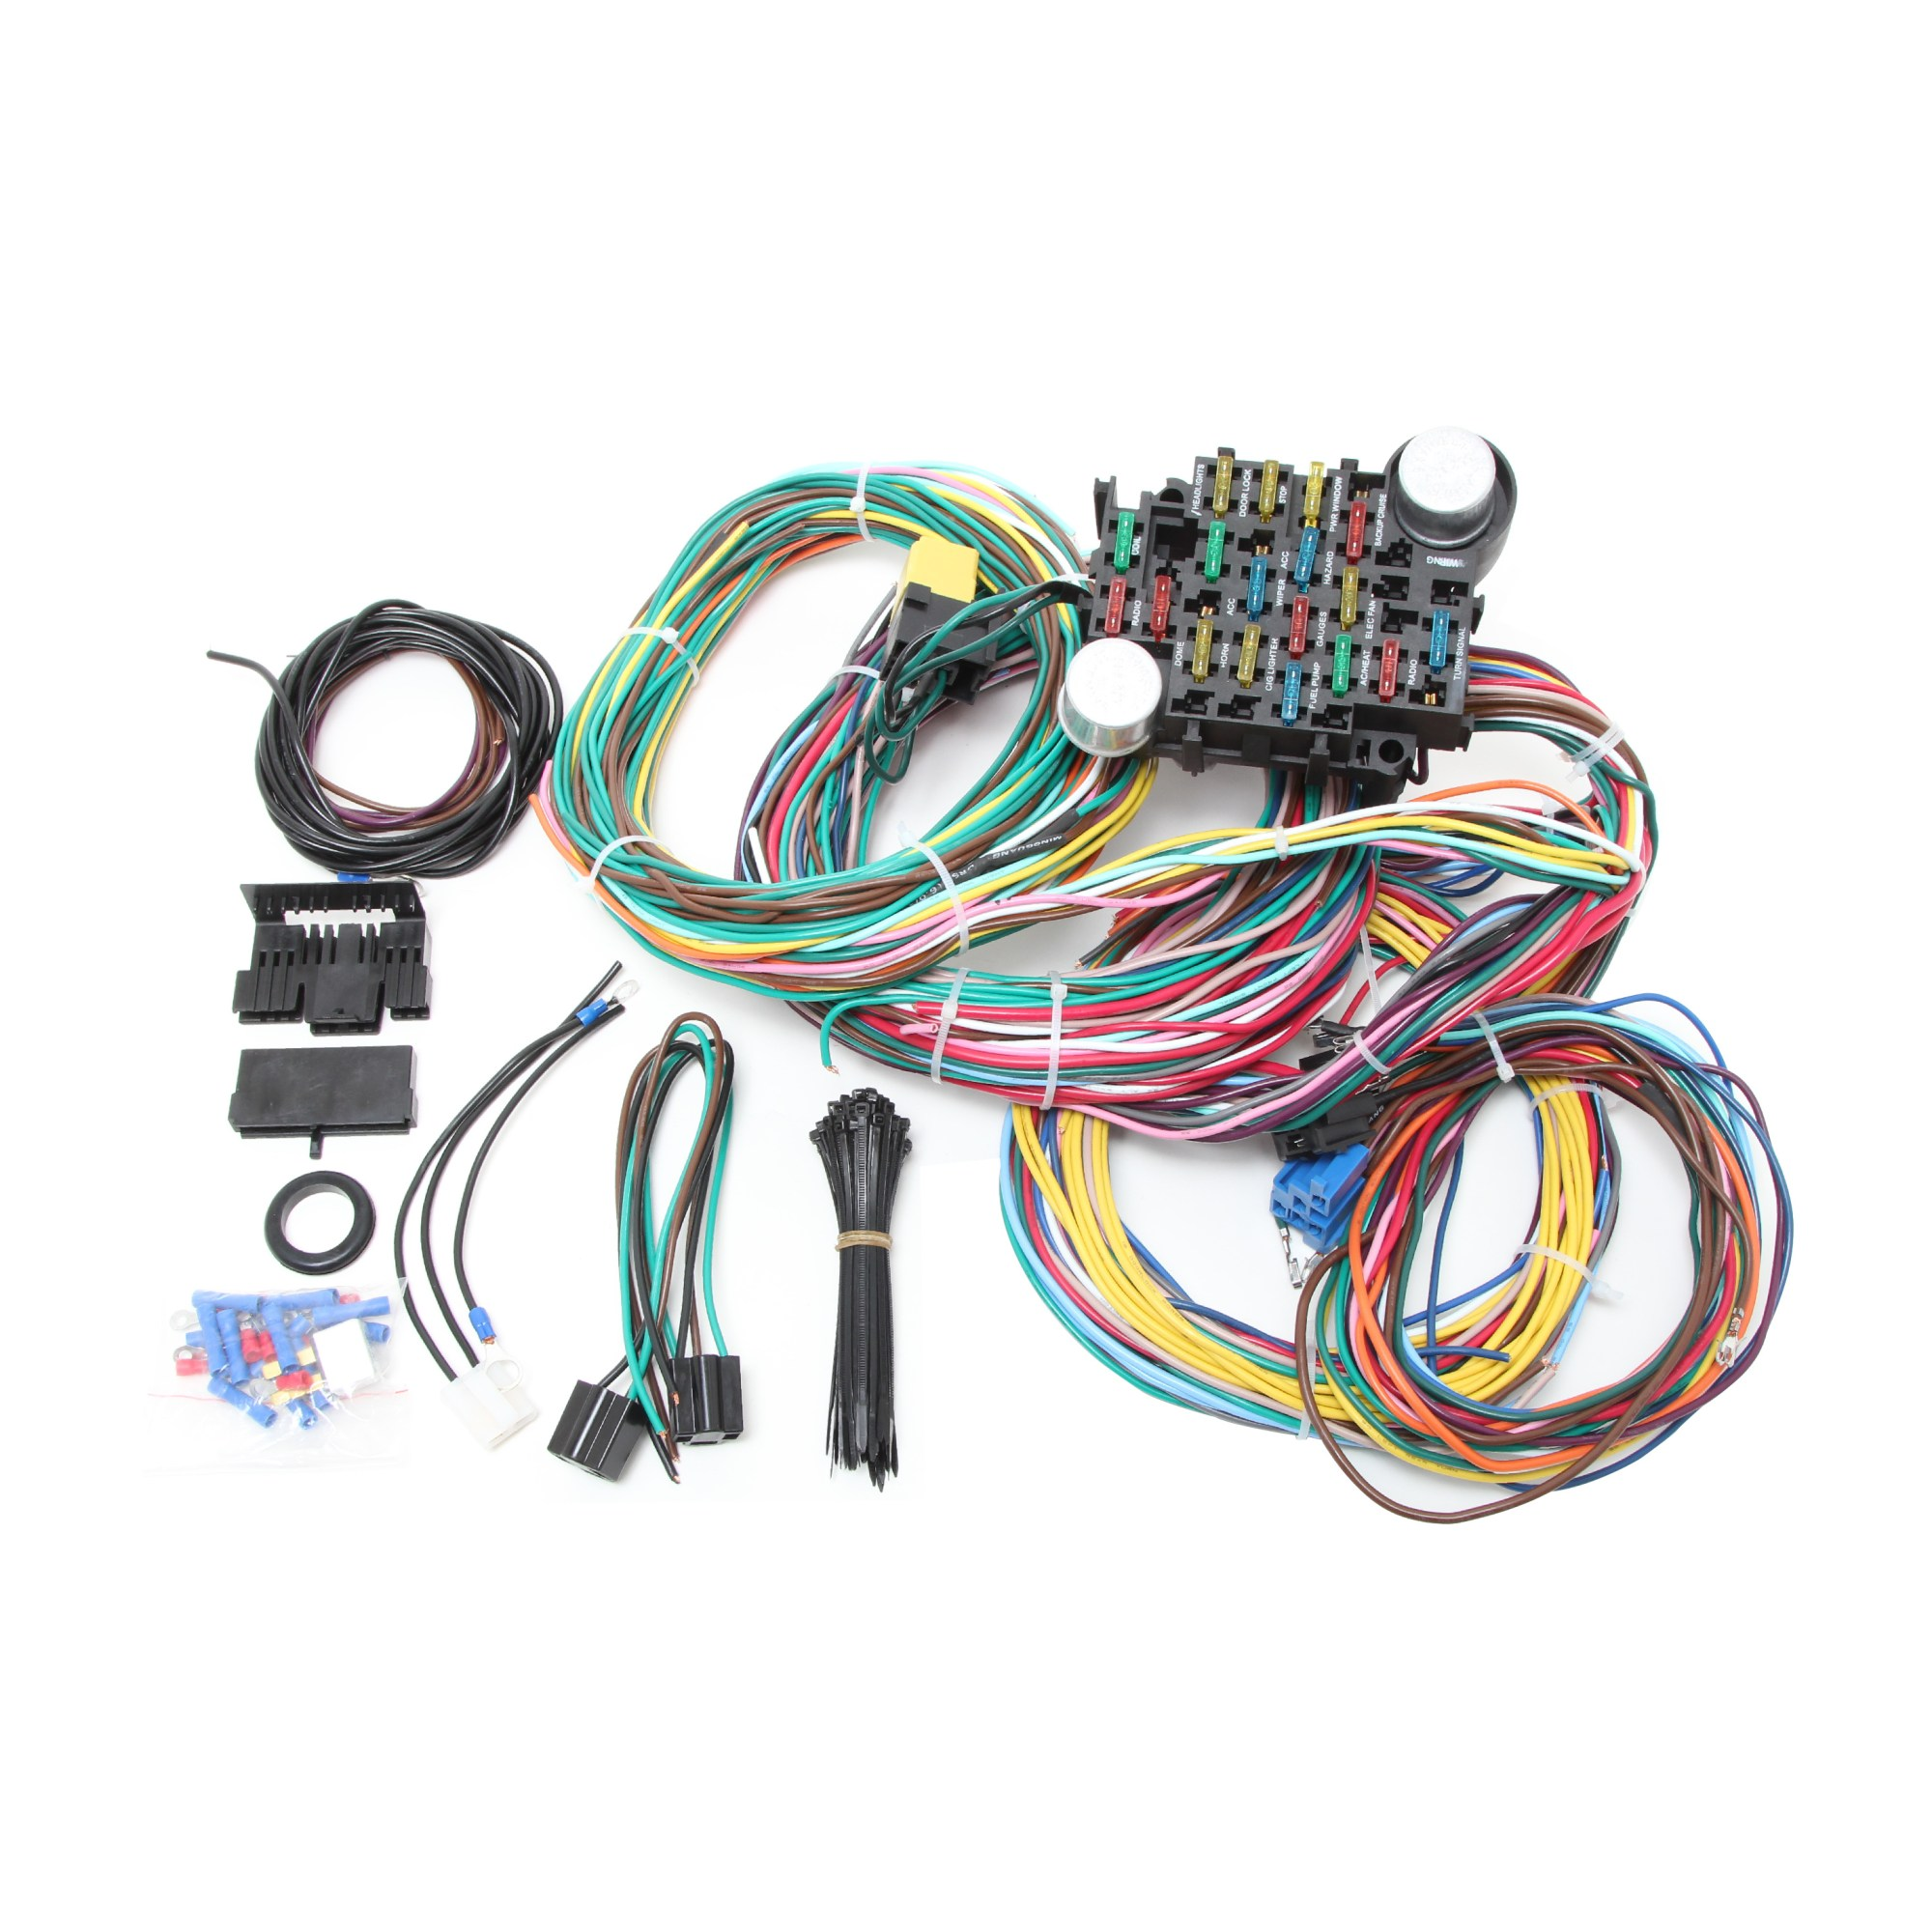 hight resolution of amc wiring harness kit wiring diagram expert amc wiring harness kit